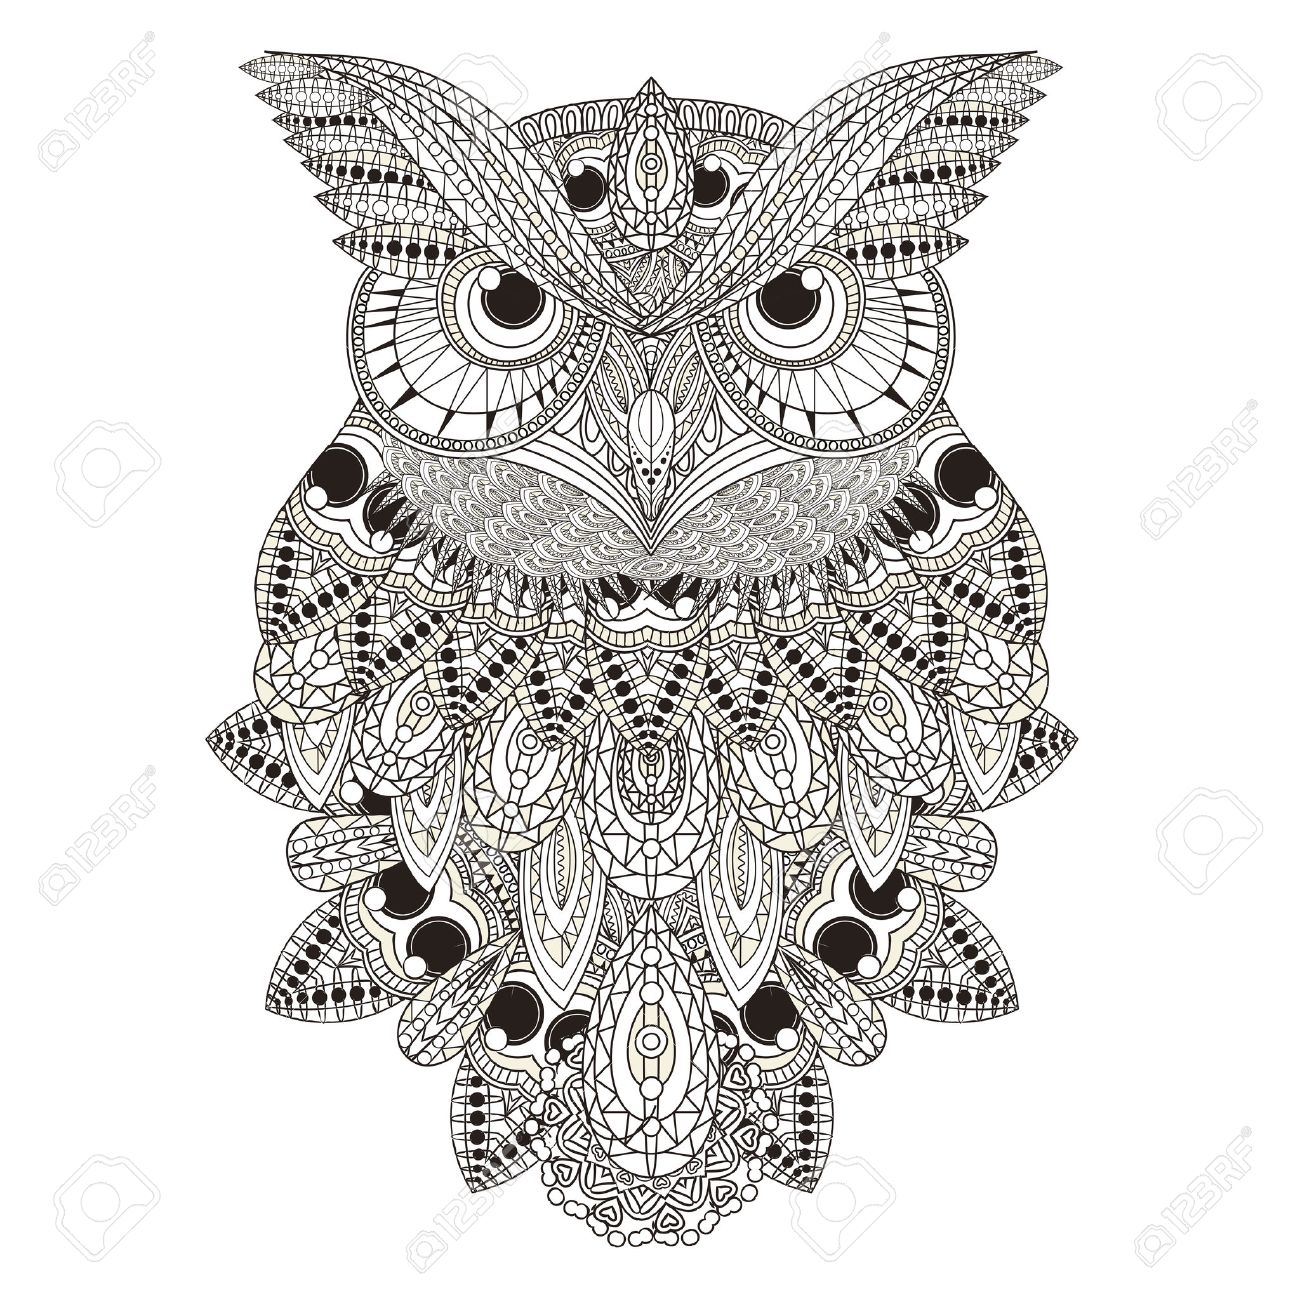 sumptuous owl coloring page in exquisite style royalty free